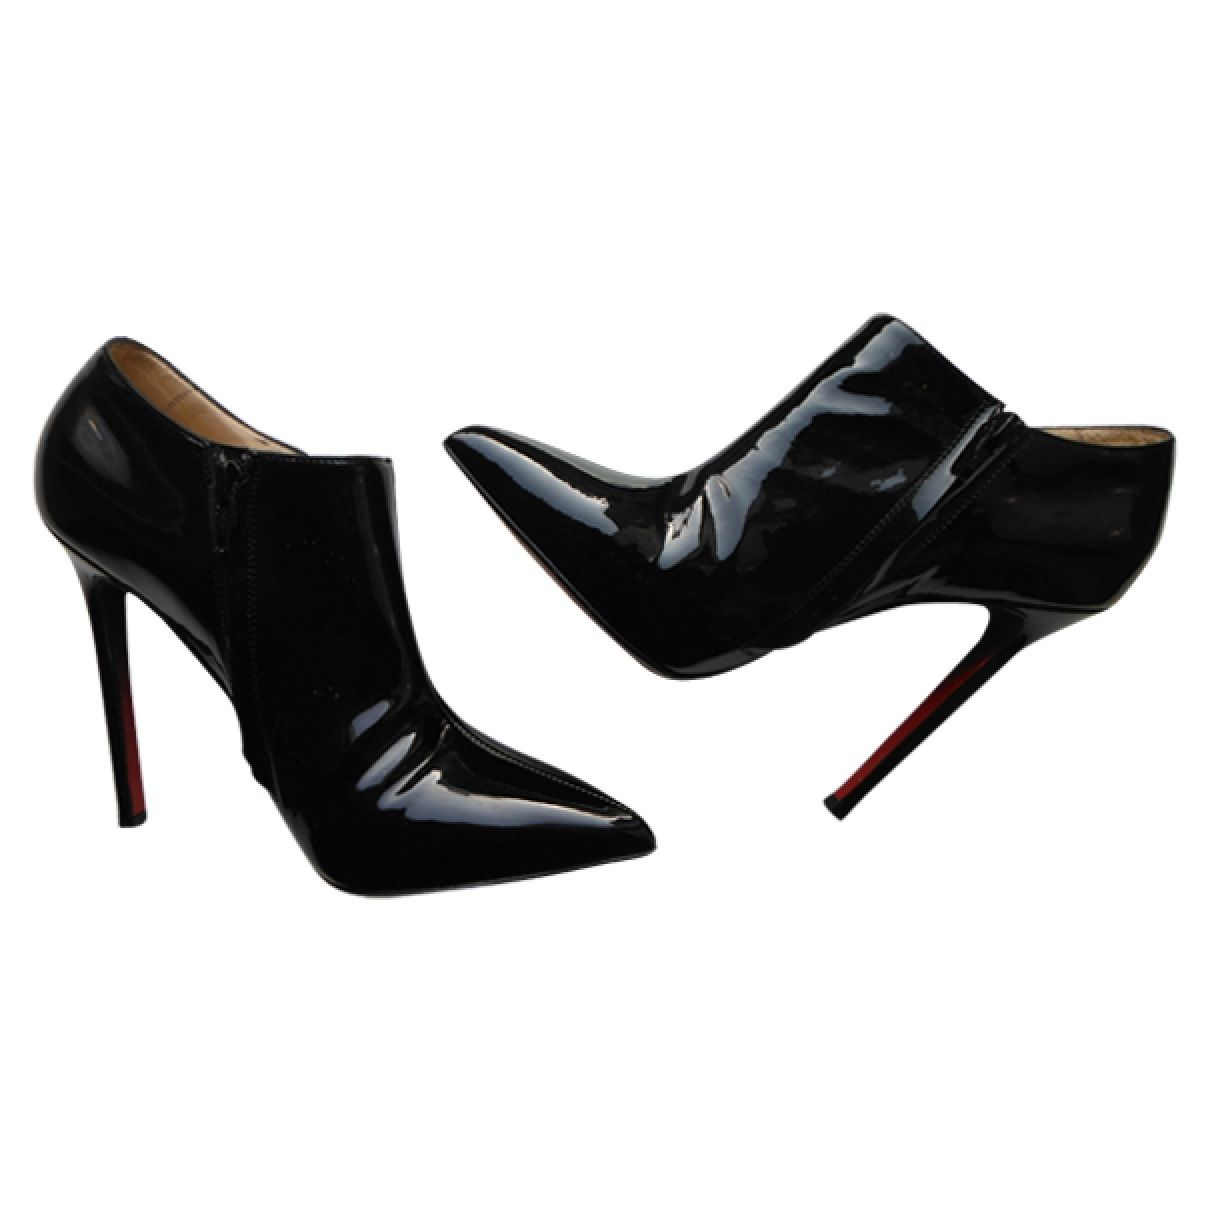 c7d480ae1bd9 Buy your black patent leather ankle boots CHRISTIAN LOUBOUTIN on Vestiaire  Collective